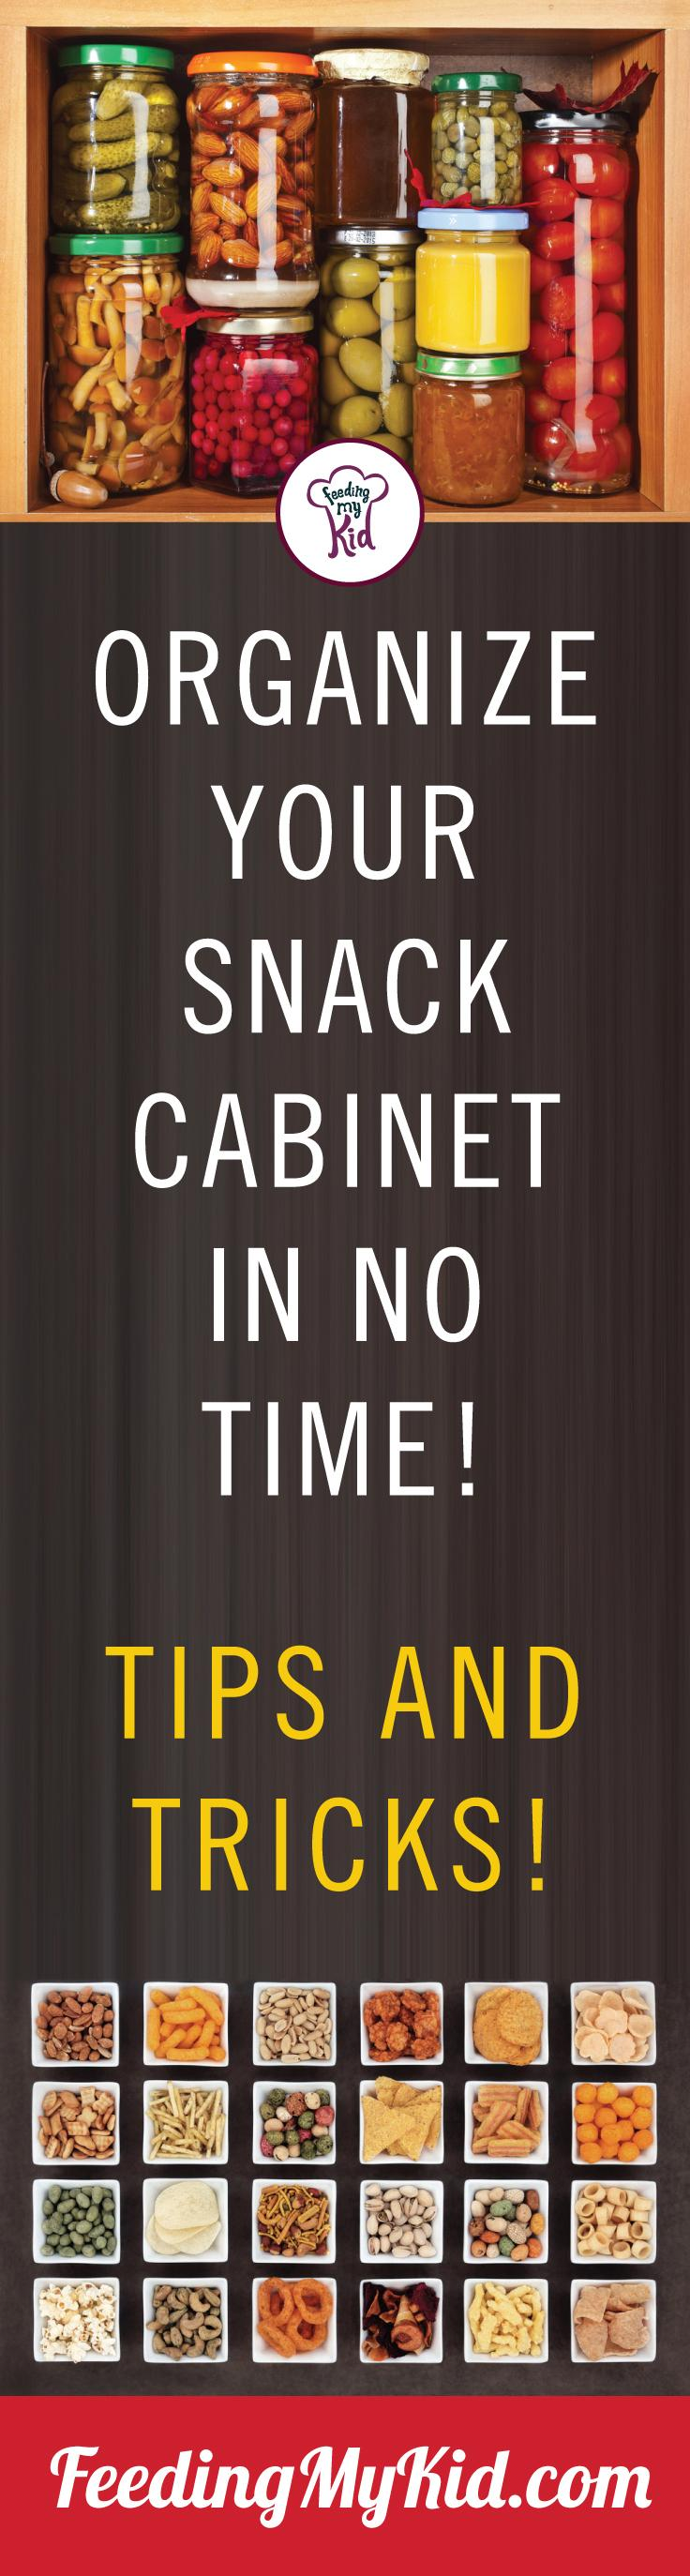 Ever have trouble trying to find a snack in the pantry? Organize your snack cabinet today! Check out these great pantry organization ideas! Feeding My Kid is a filled with all the information you need about how to raise your kids, from healthy tips to nutritious recipes. #FeedingMyKid #pantry #snack #kitchenorganization